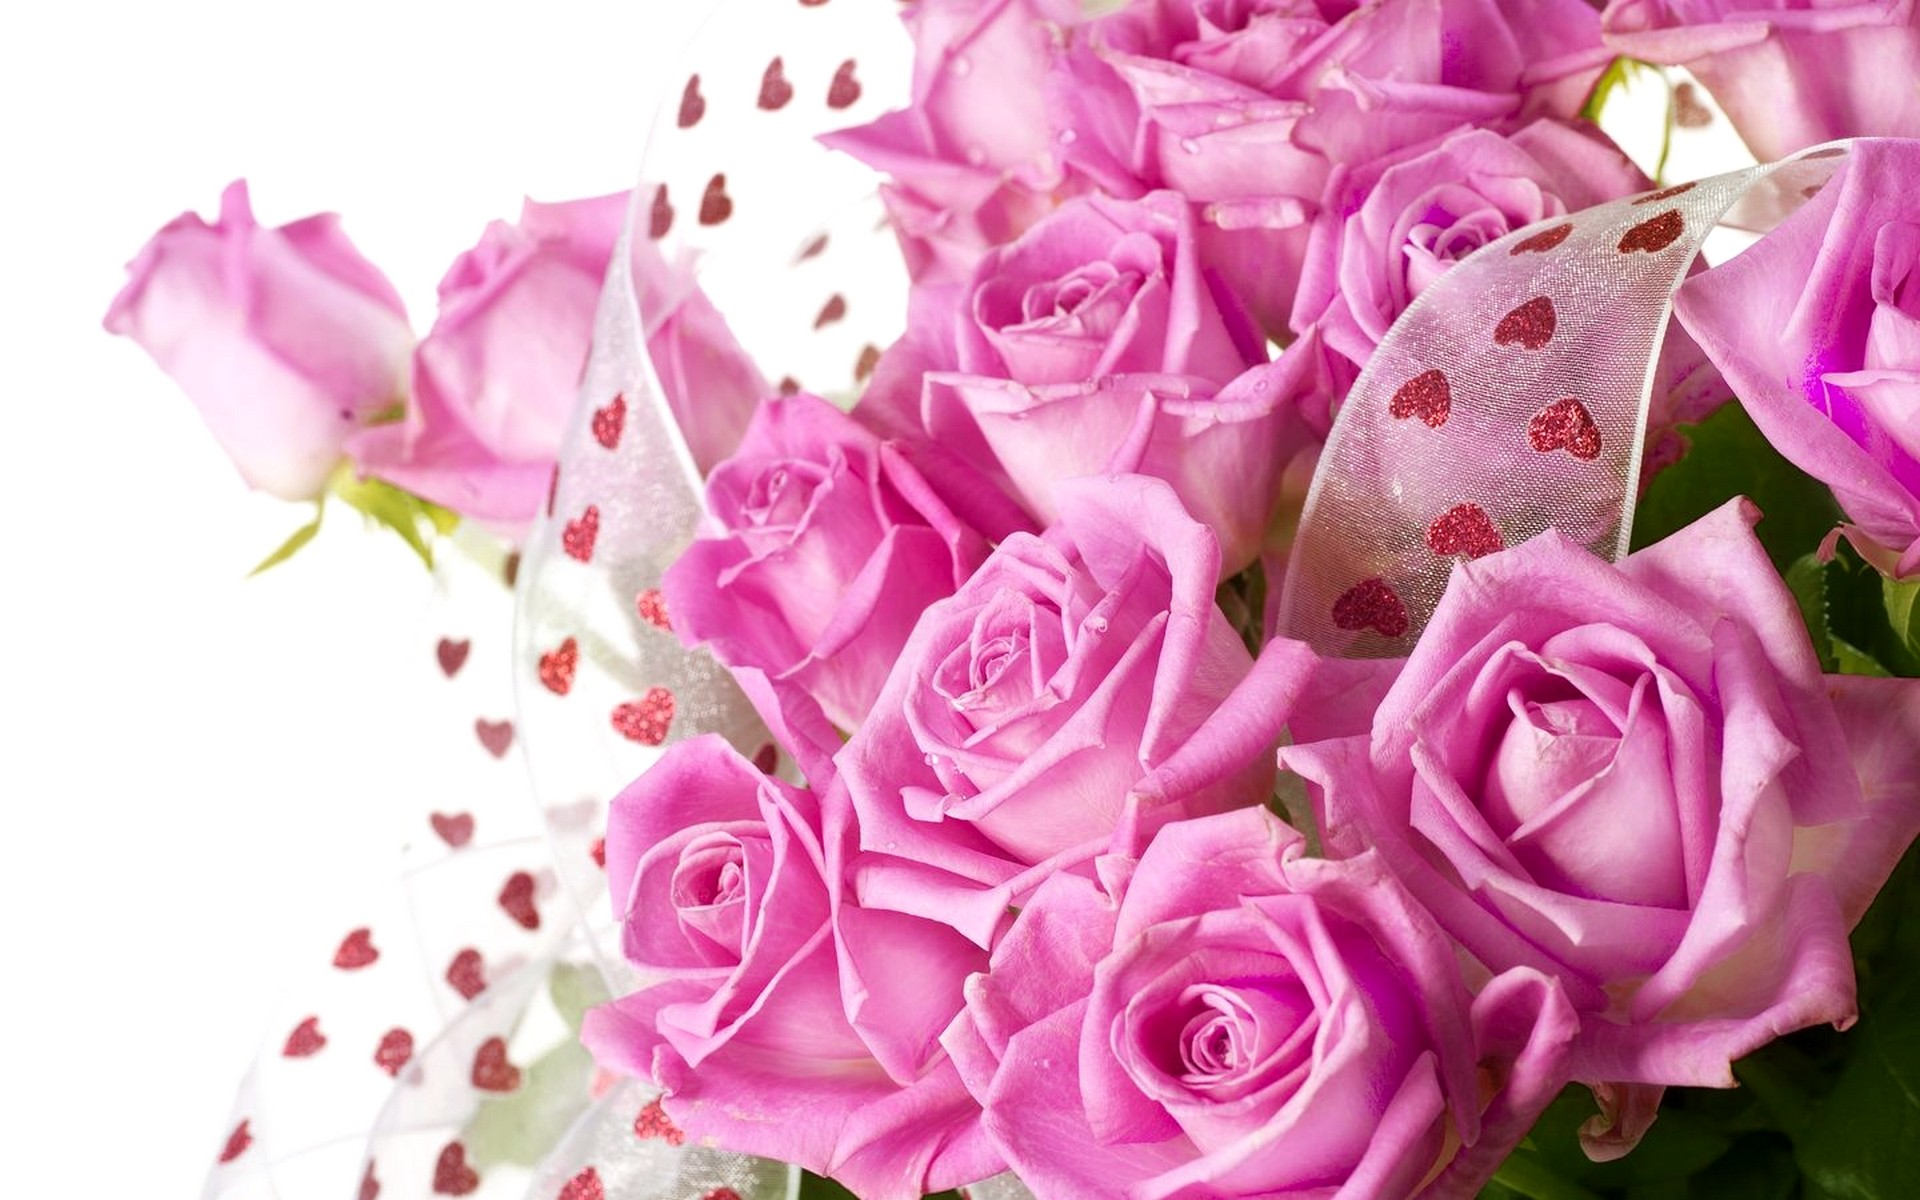 Beautiful roses wallpapers 62 background pictures 2560x1600 red beauty pink bright nature roses lovely beautiful tulips flowers rose wallpapers in full hd 2560x1600 izmirmasajfo